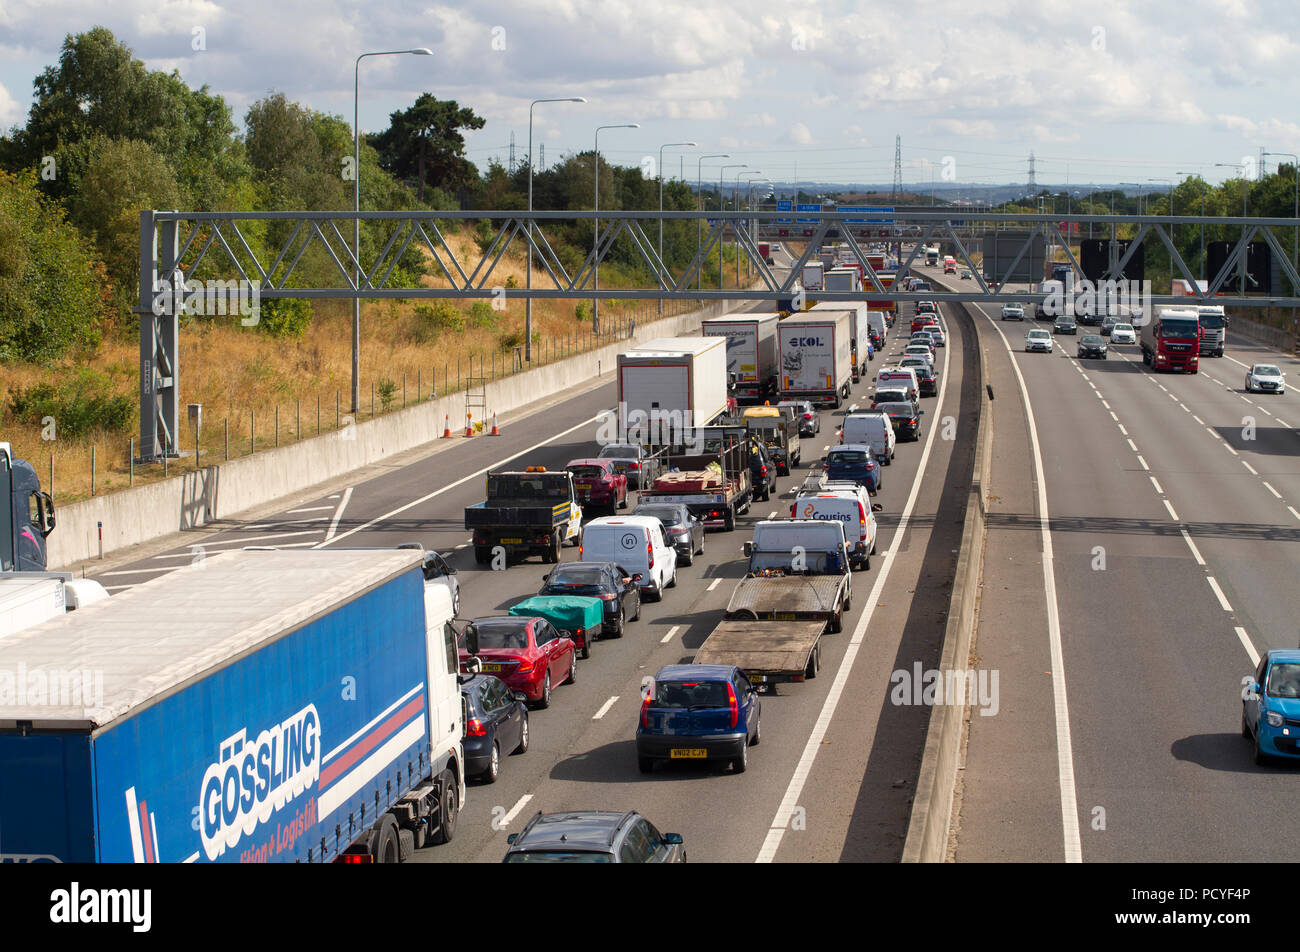 M25 traffic jam on the approach to the Dartford River Crossing at West Thurrock in Essex. - Stock Image